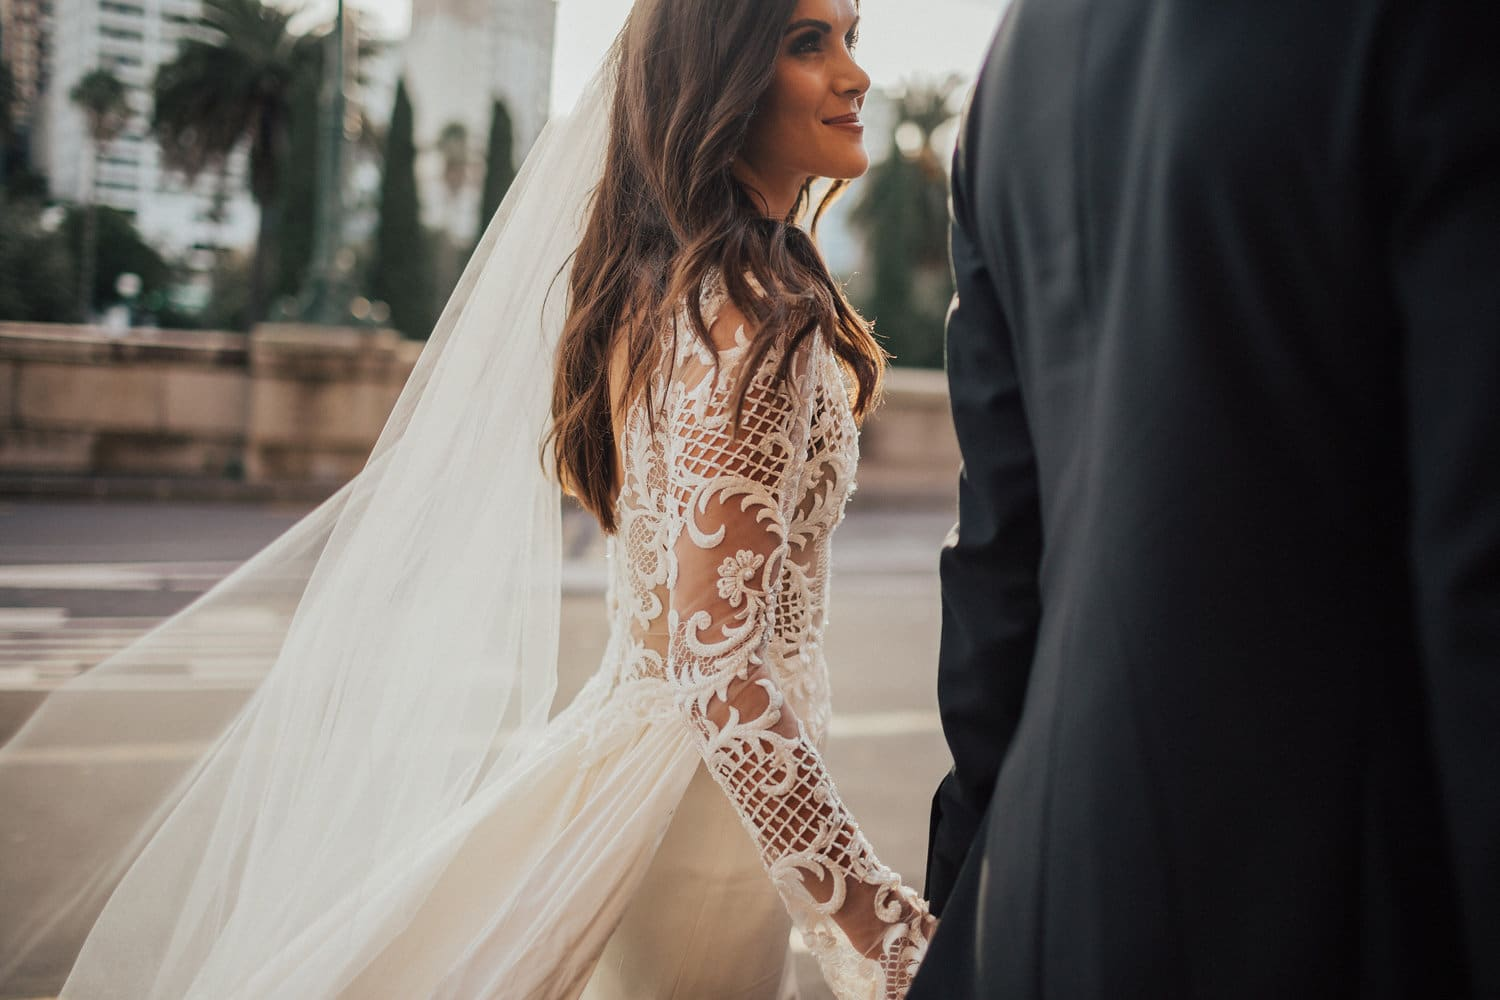 Real Weddings | Vinka Design | Real Brides Wearing Vinka Gowns | Hannah and Campbell - walking along close up of lace bodice embroidery detail